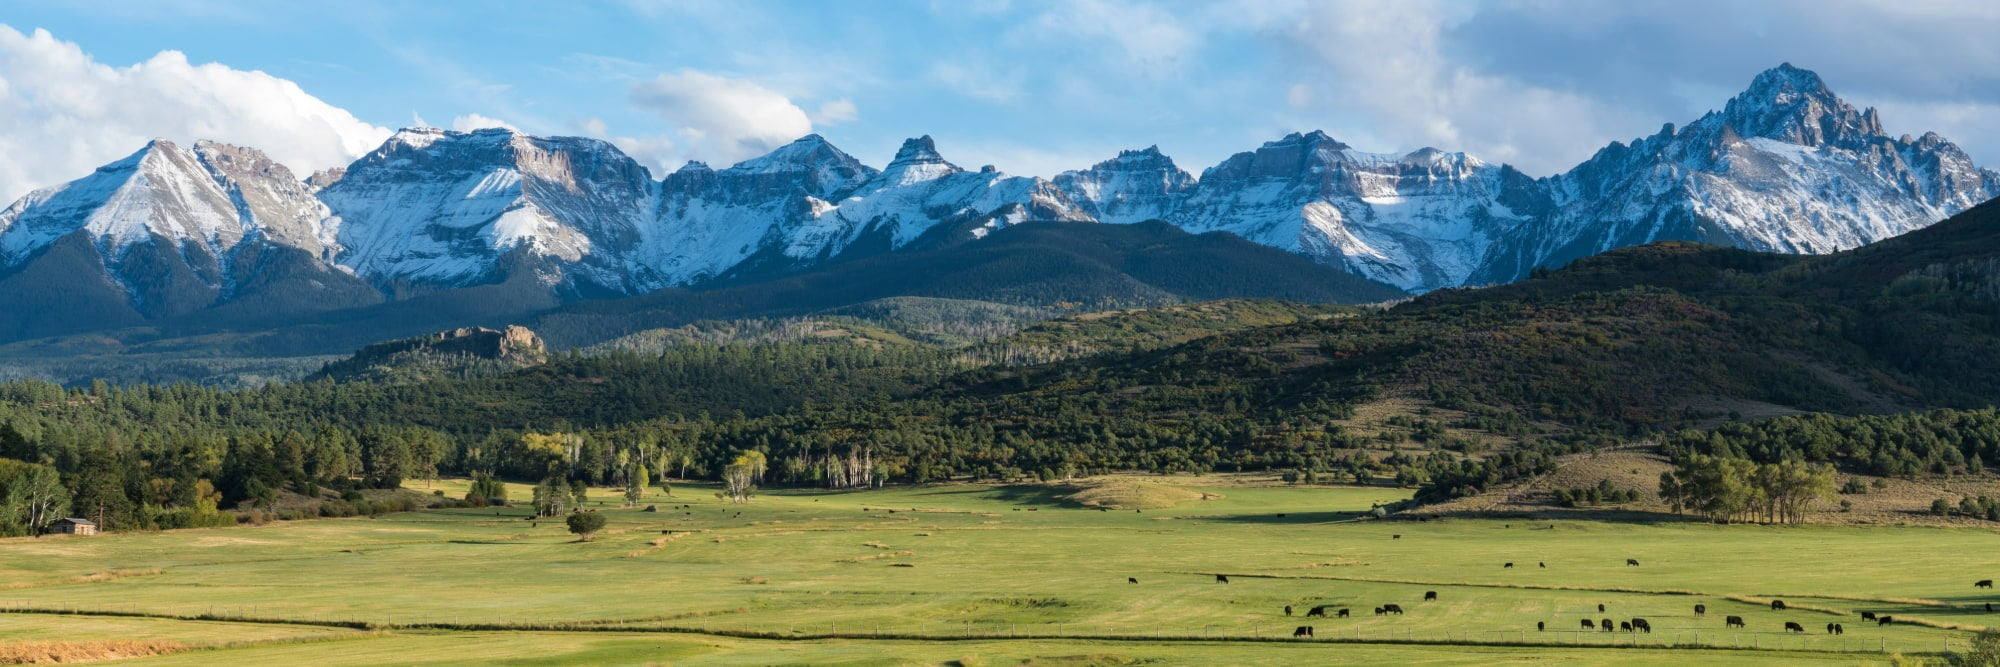 panoramic image of public lands in colorado featuring a mountain range and field